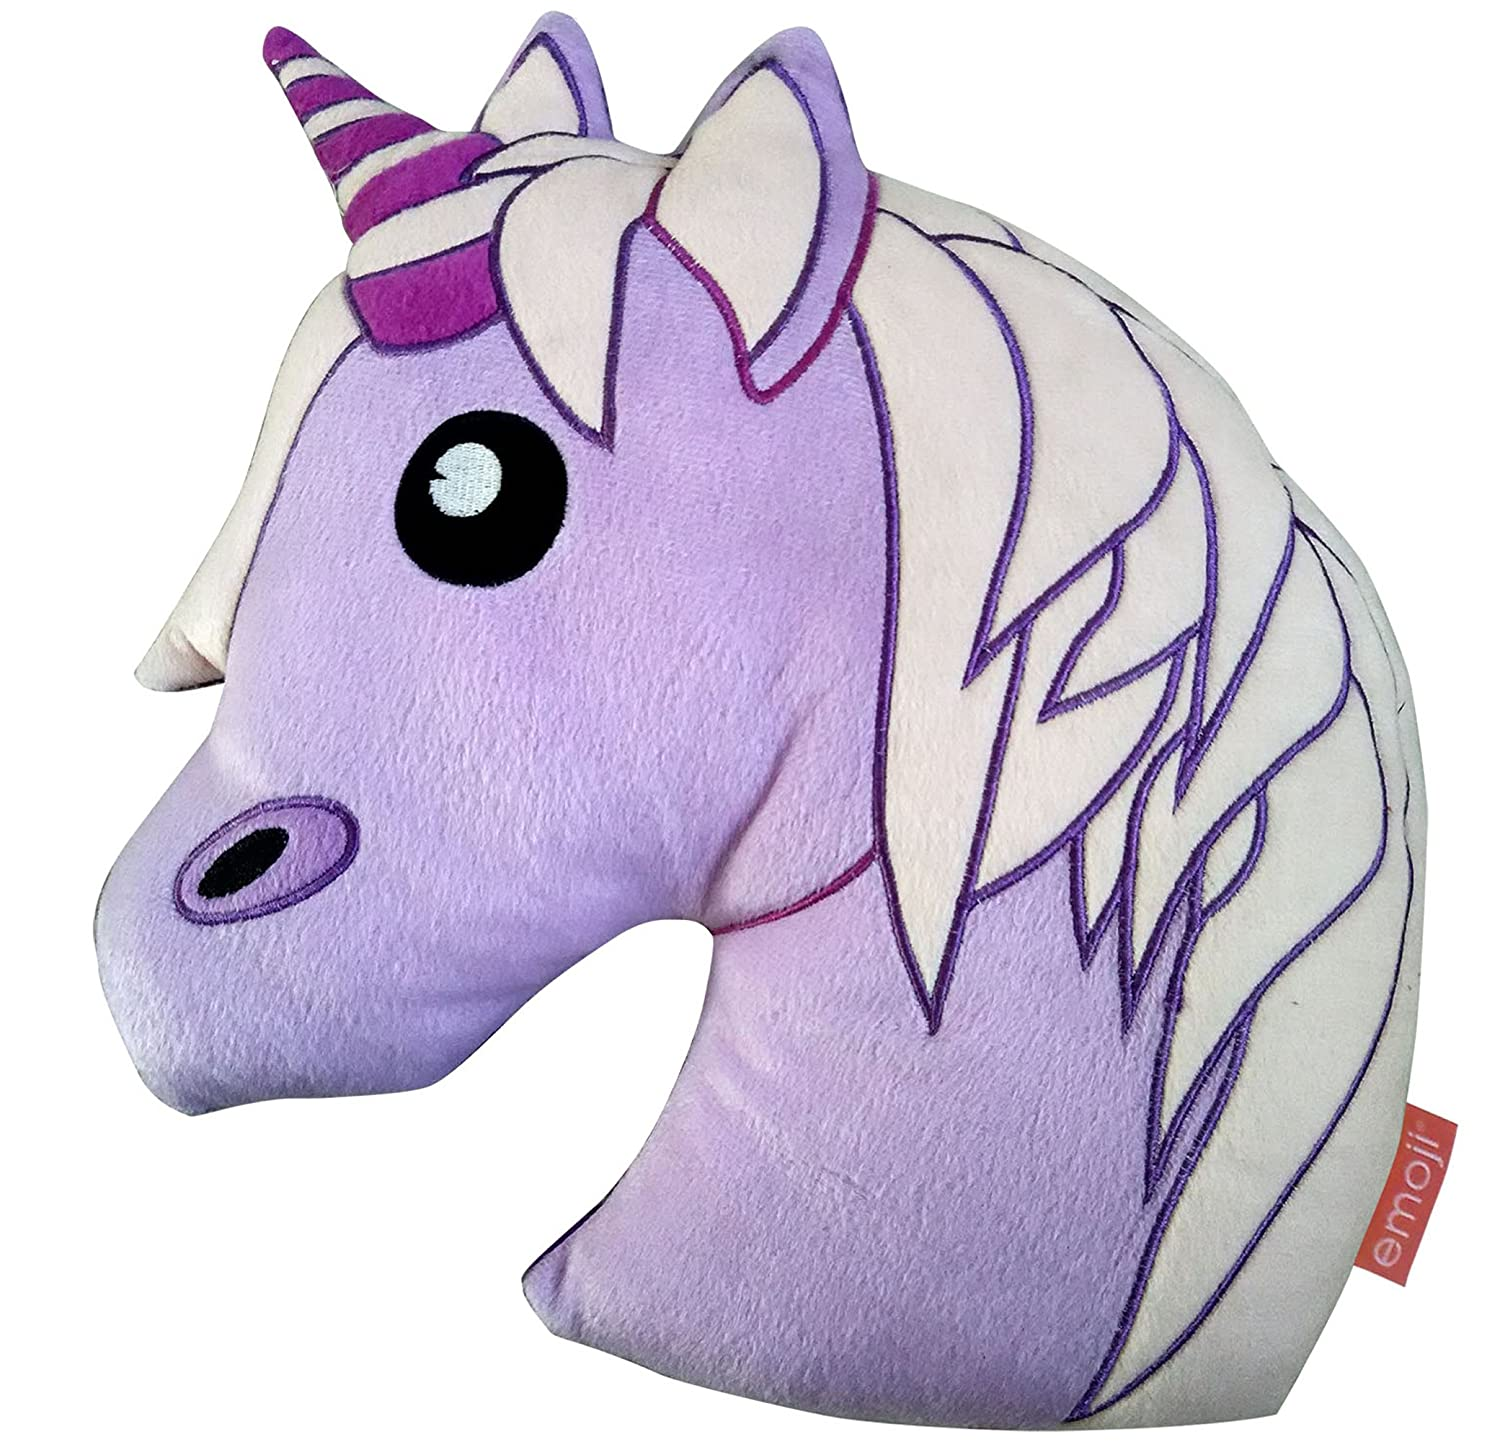 Dr Who Unicorn Emoji cojín, Lila: Amazon.es: Hogar